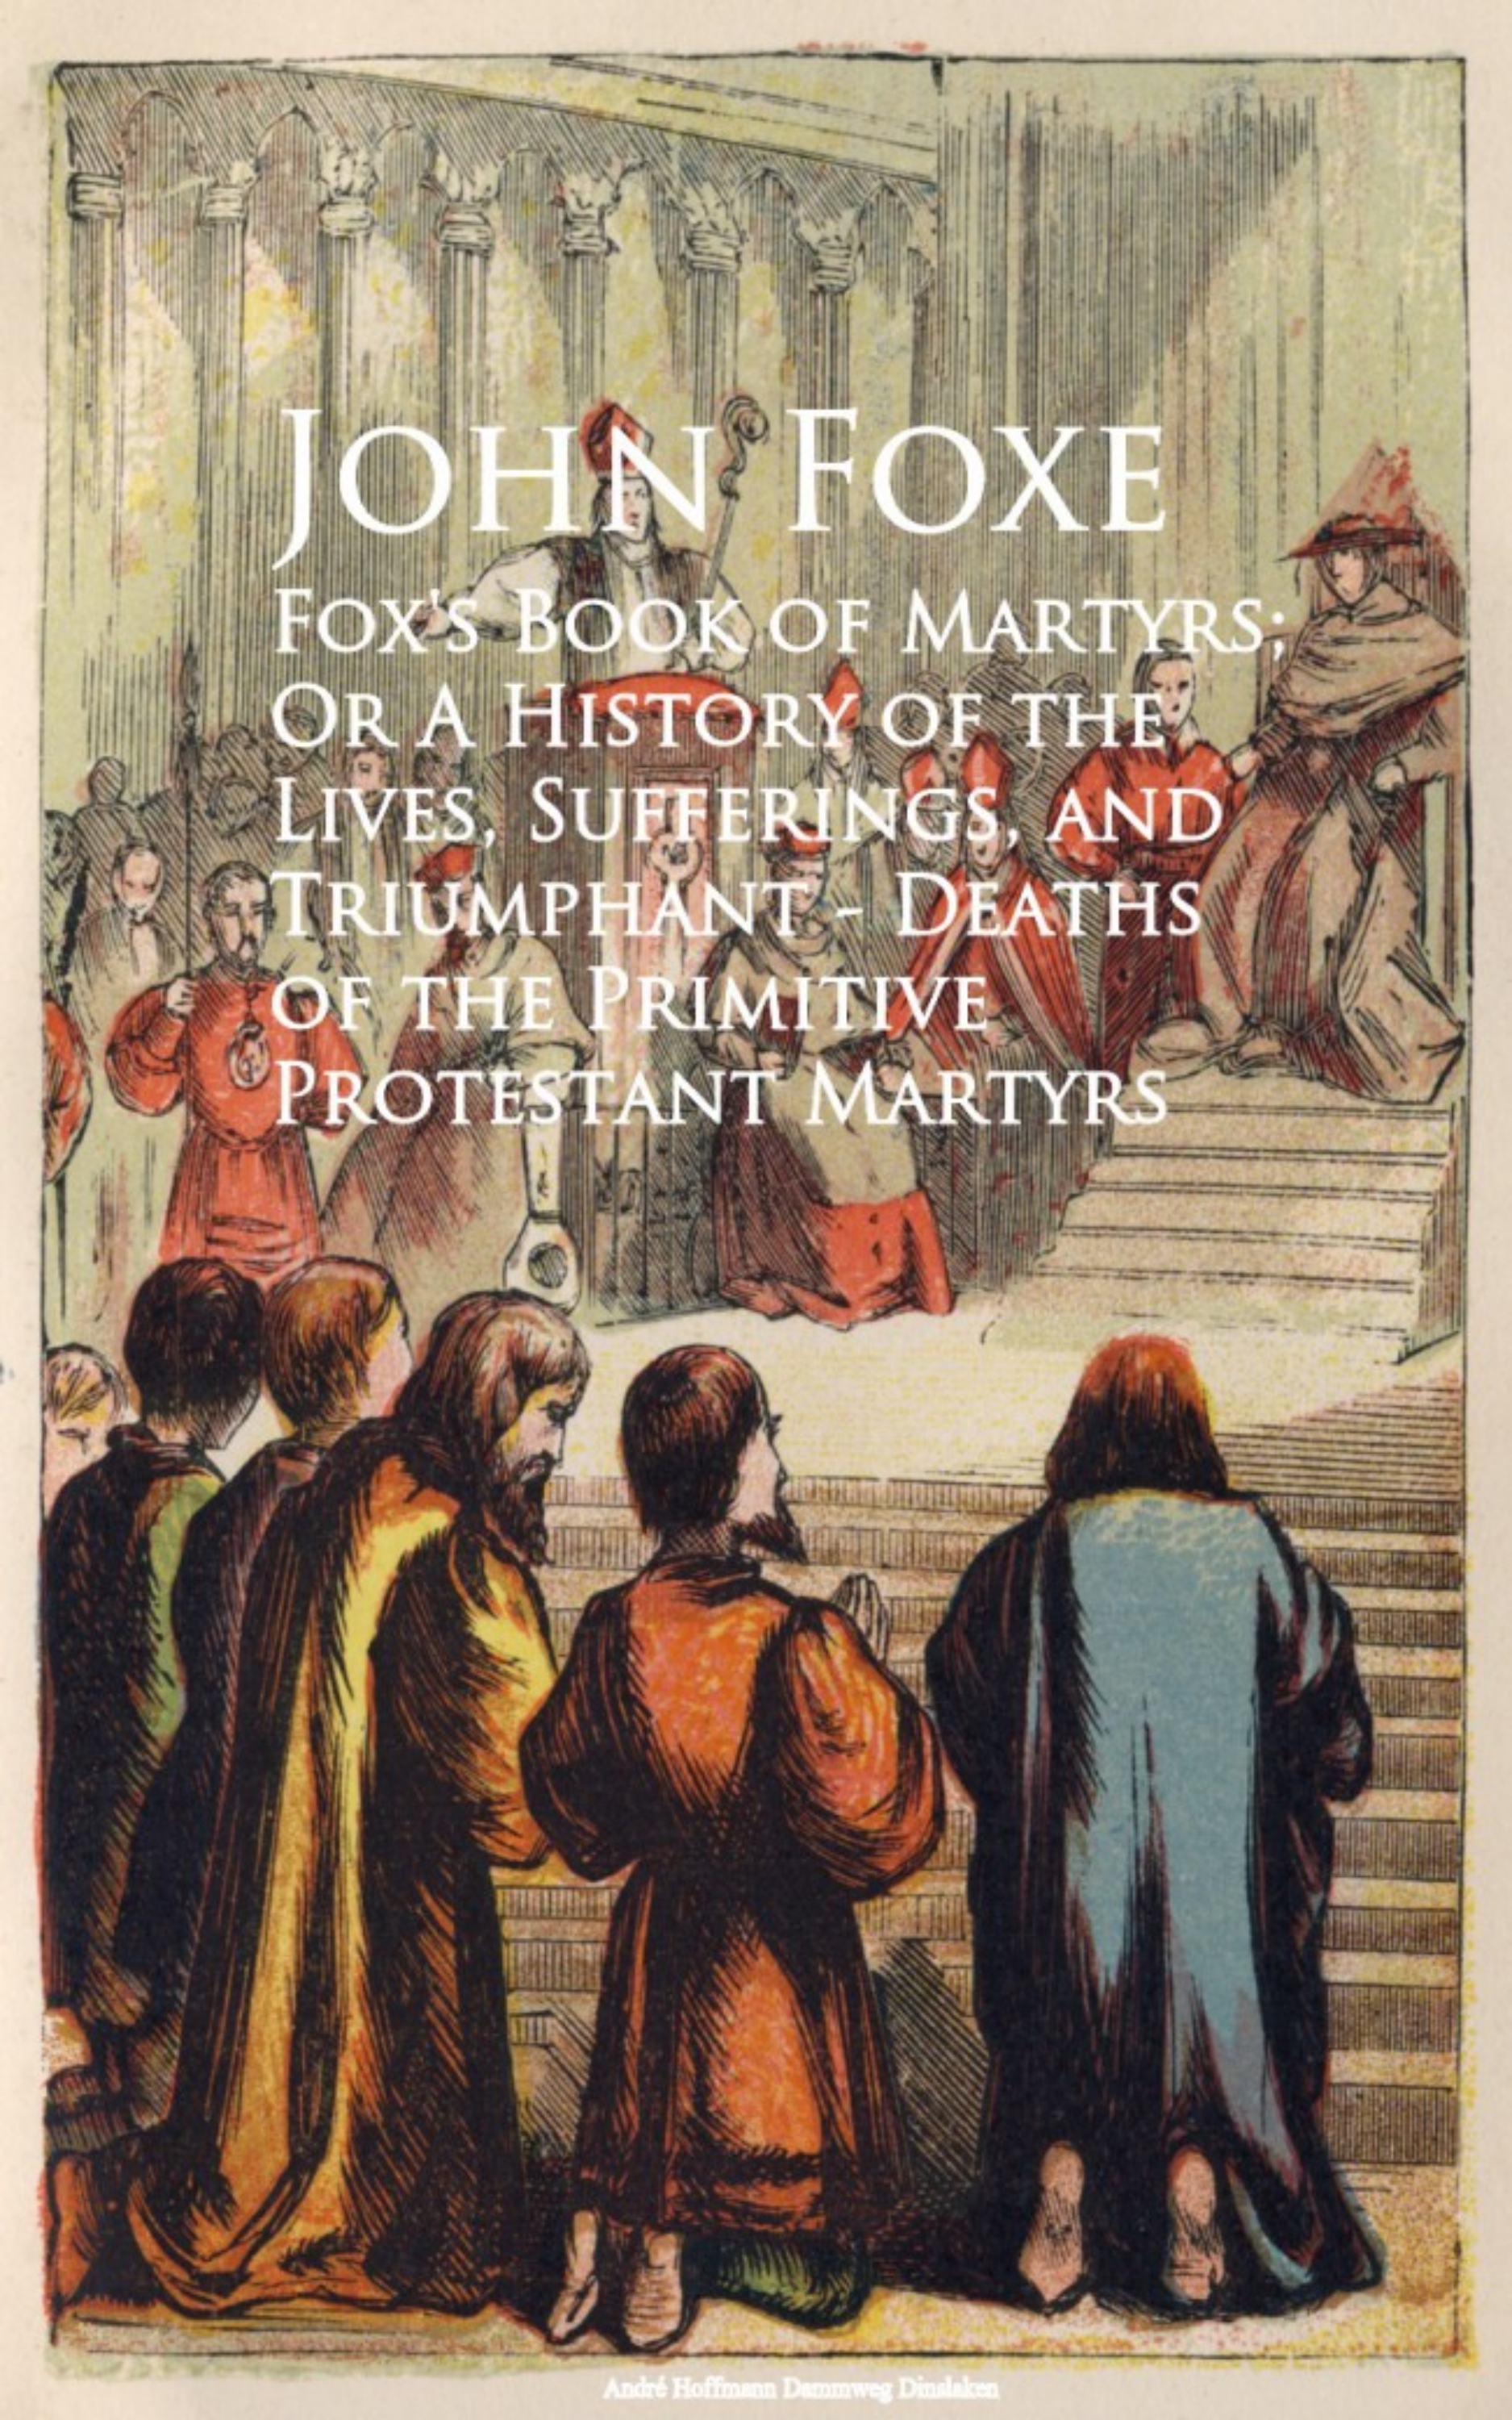 John Foxe Fox's Book of Martyrs; Or A History of the Lives, Sufferings, and Triumphant - Deaths of the Primitive Protestant Martyrs hill bibliotheca primatologica development of the primitive streak